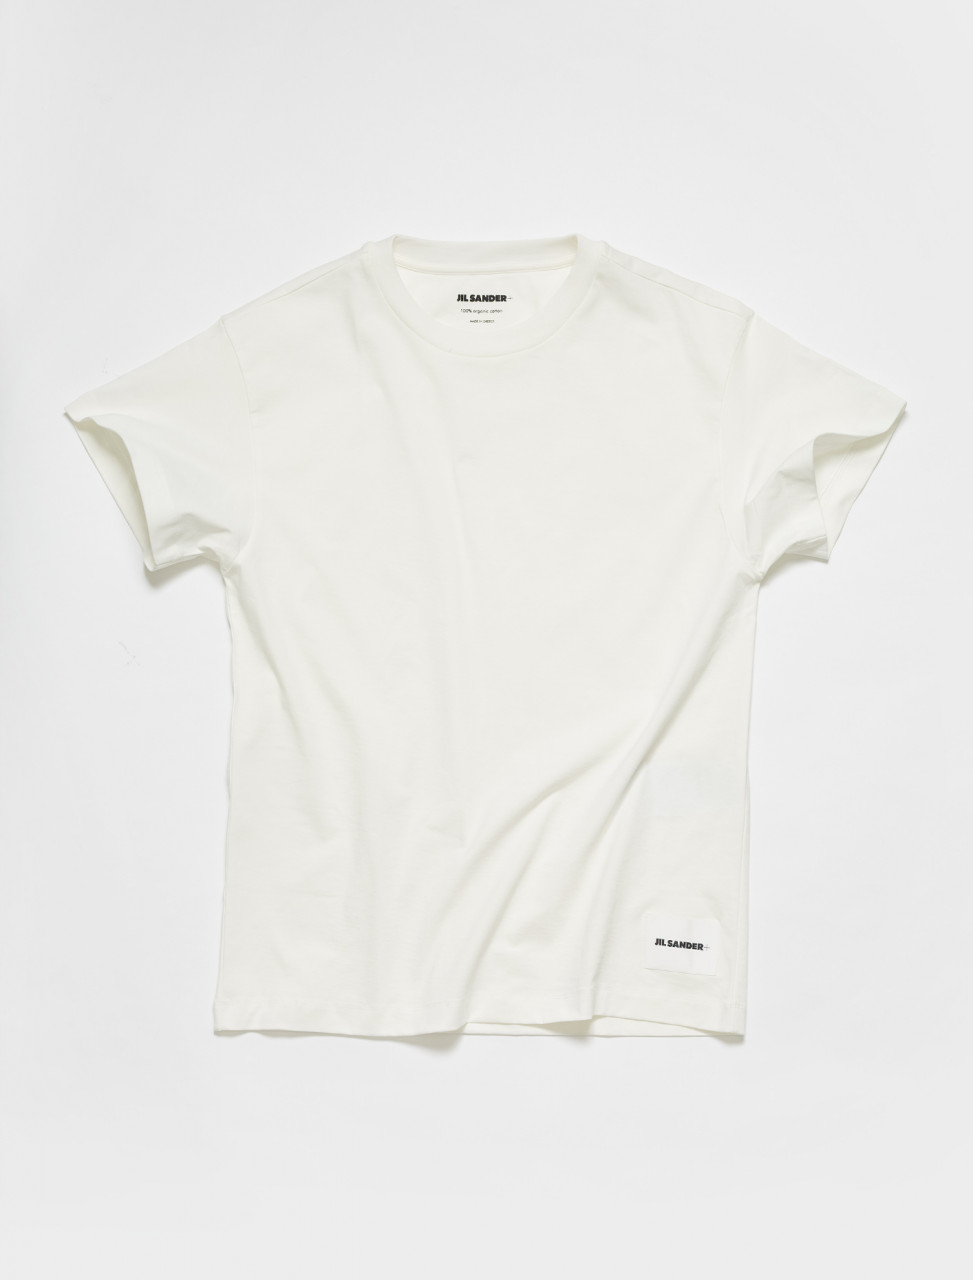 JPUS706530-MS248808-100 JIL SANDER T SHIRT 3 PACK IN WHITE